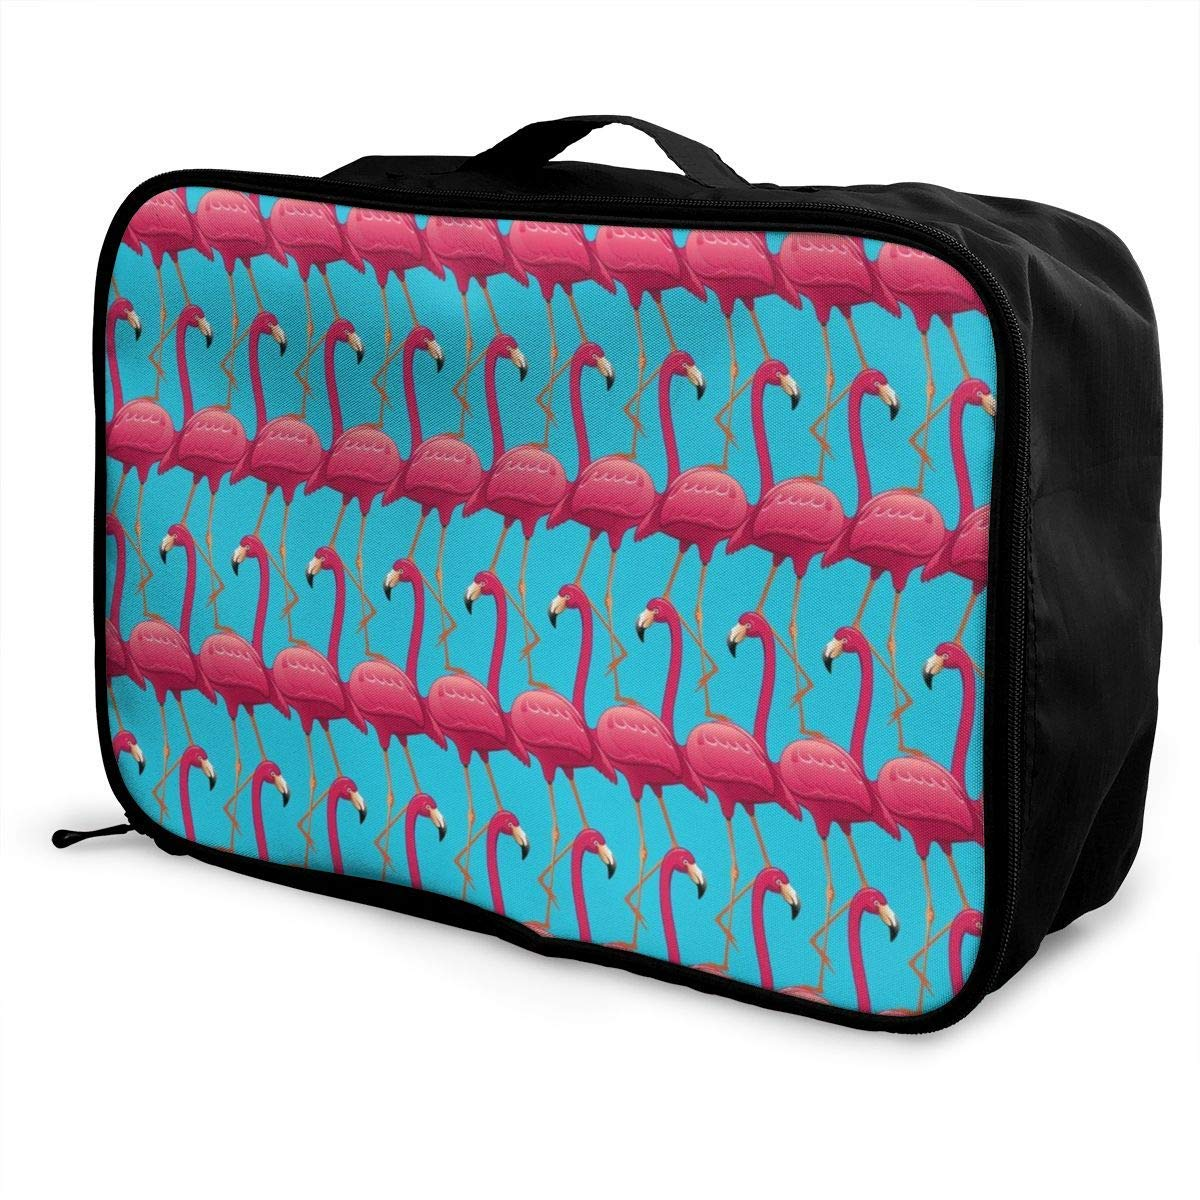 Pink Flamingos On Blue Background Travel Lightweight Waterproof Foldable Storage Carry Luggage Duffle Tote Bag JTRVW Luggage Bags for Travel